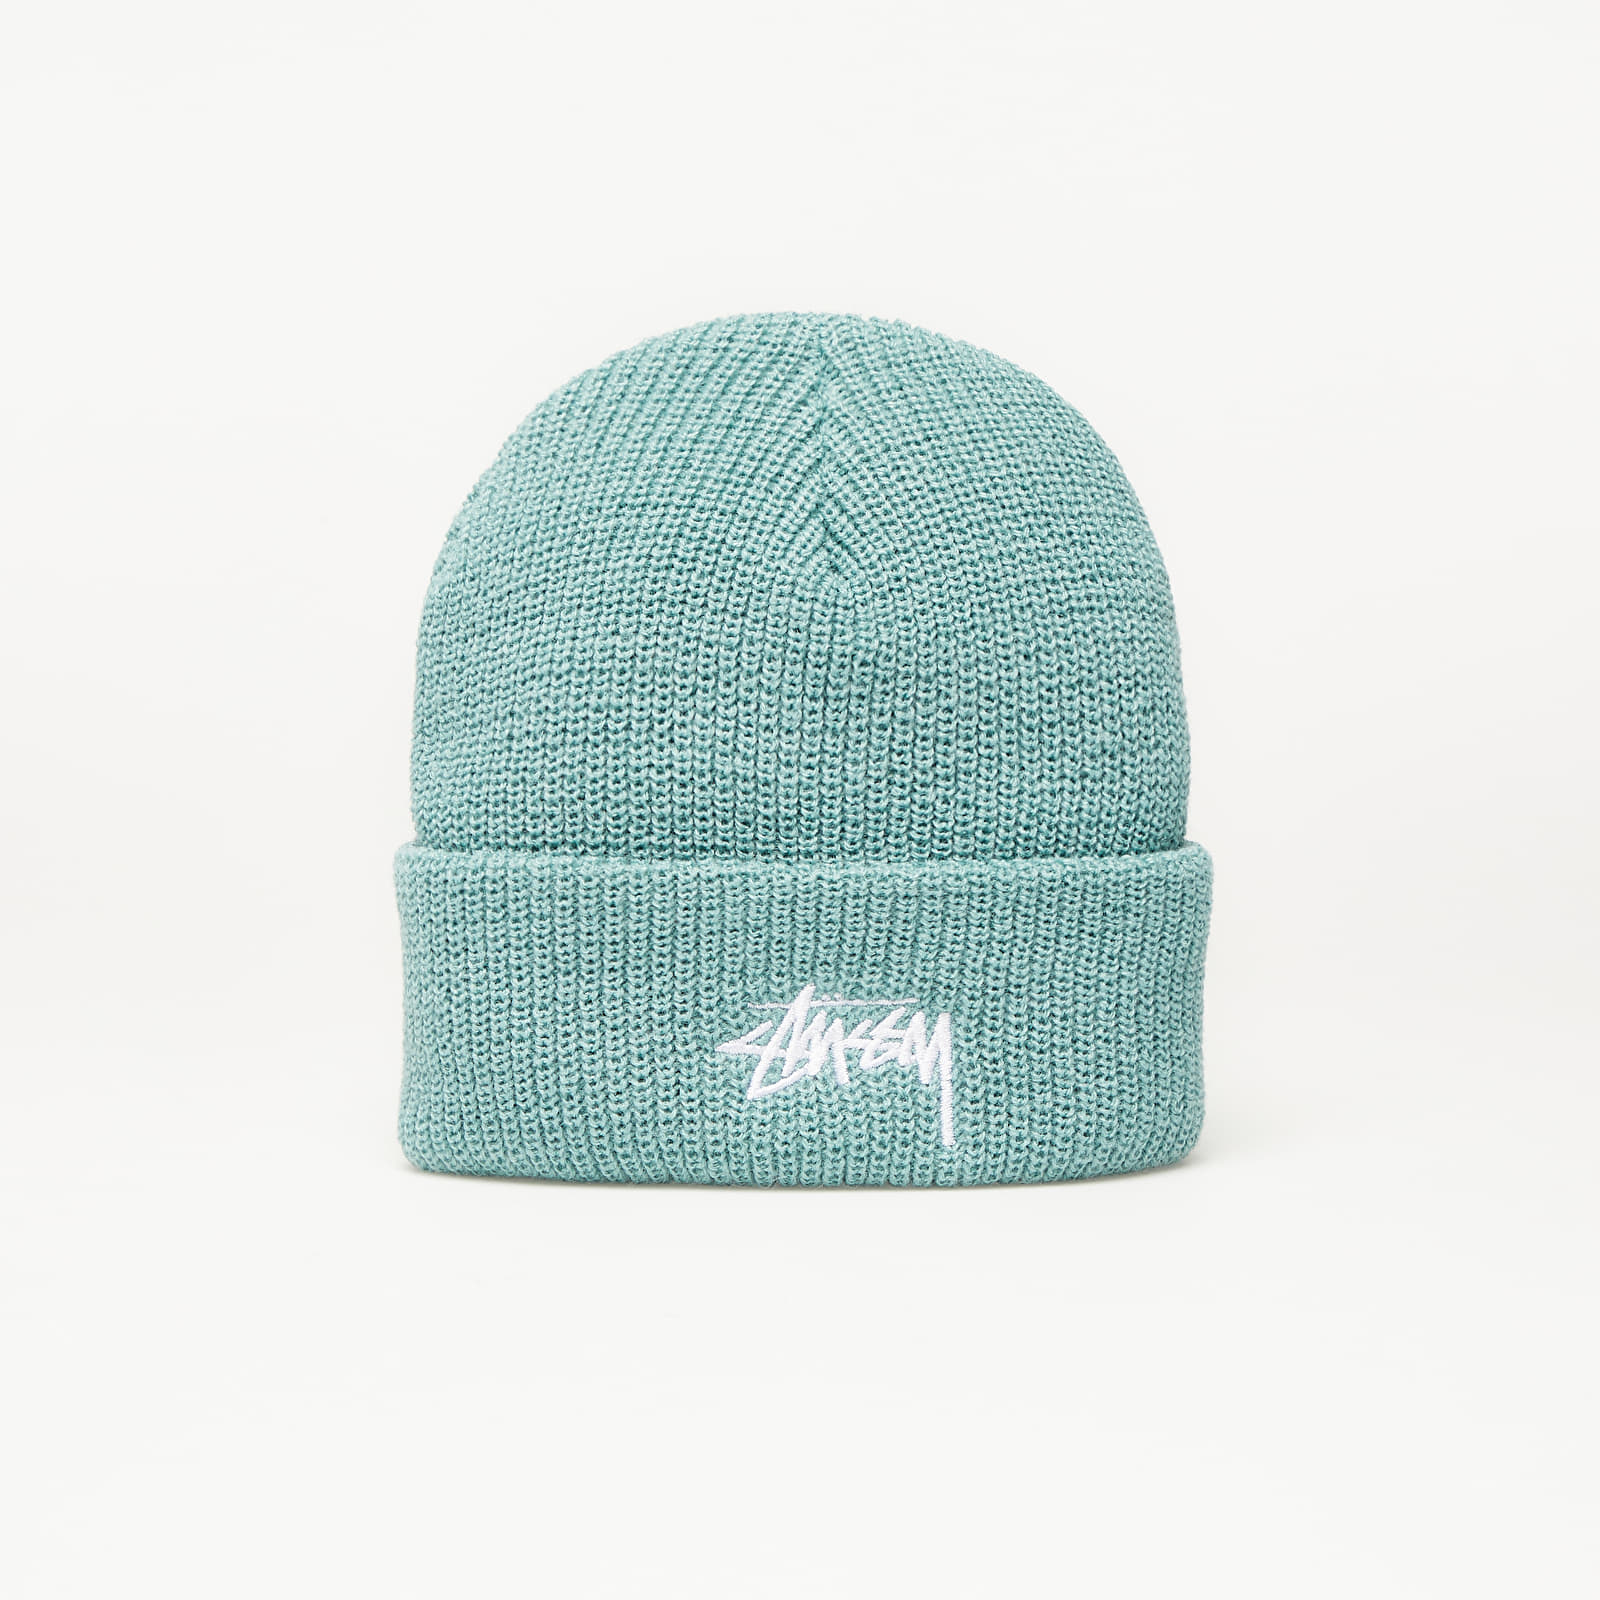 Caps and Hats Stüssy Stock Cuff Beanie Green